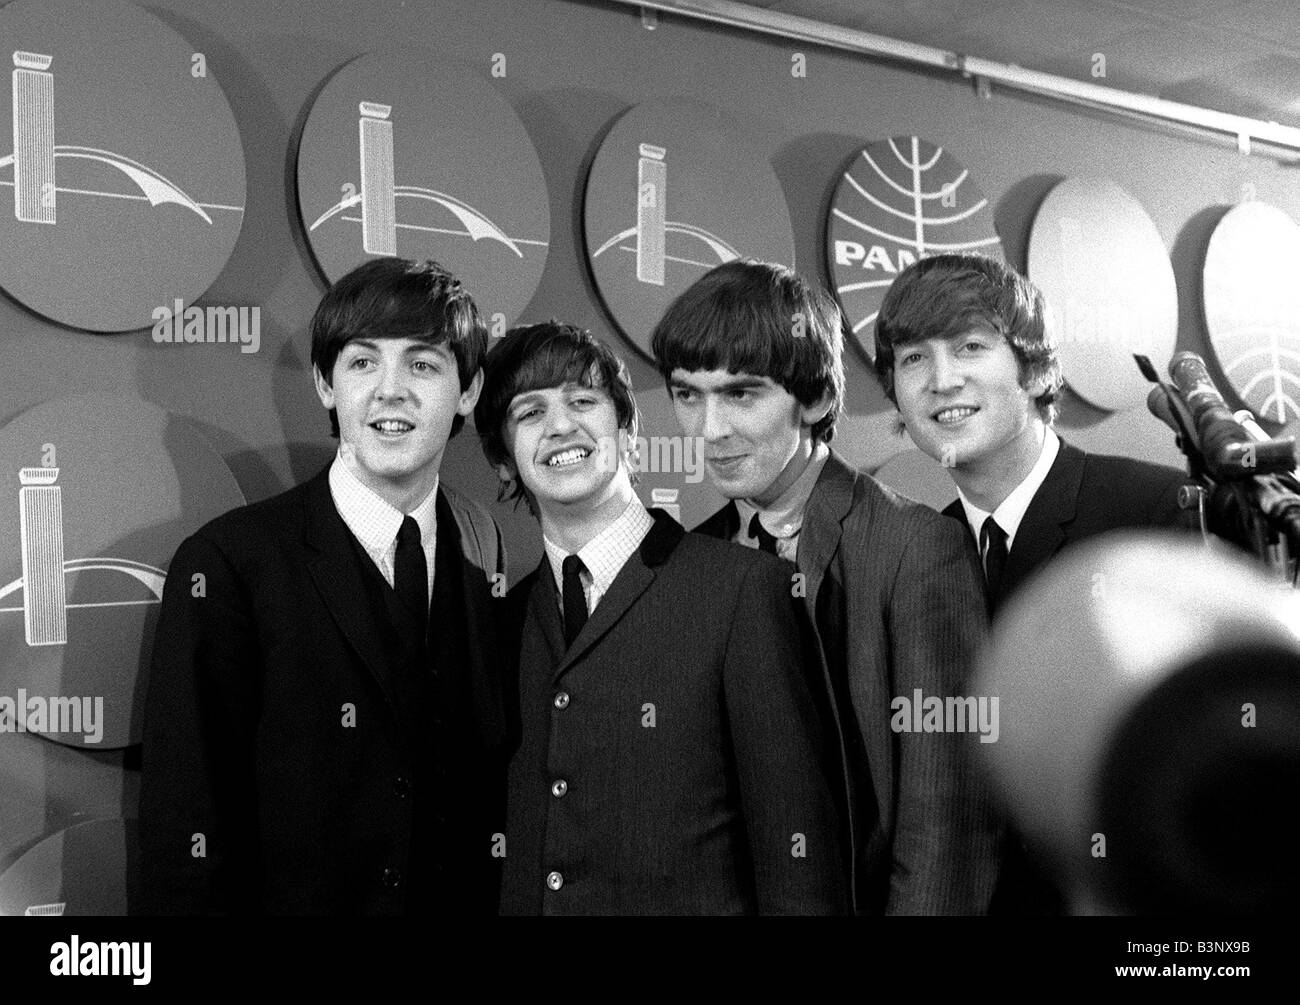 the beatles february 1964 paul mccartney ringo starr